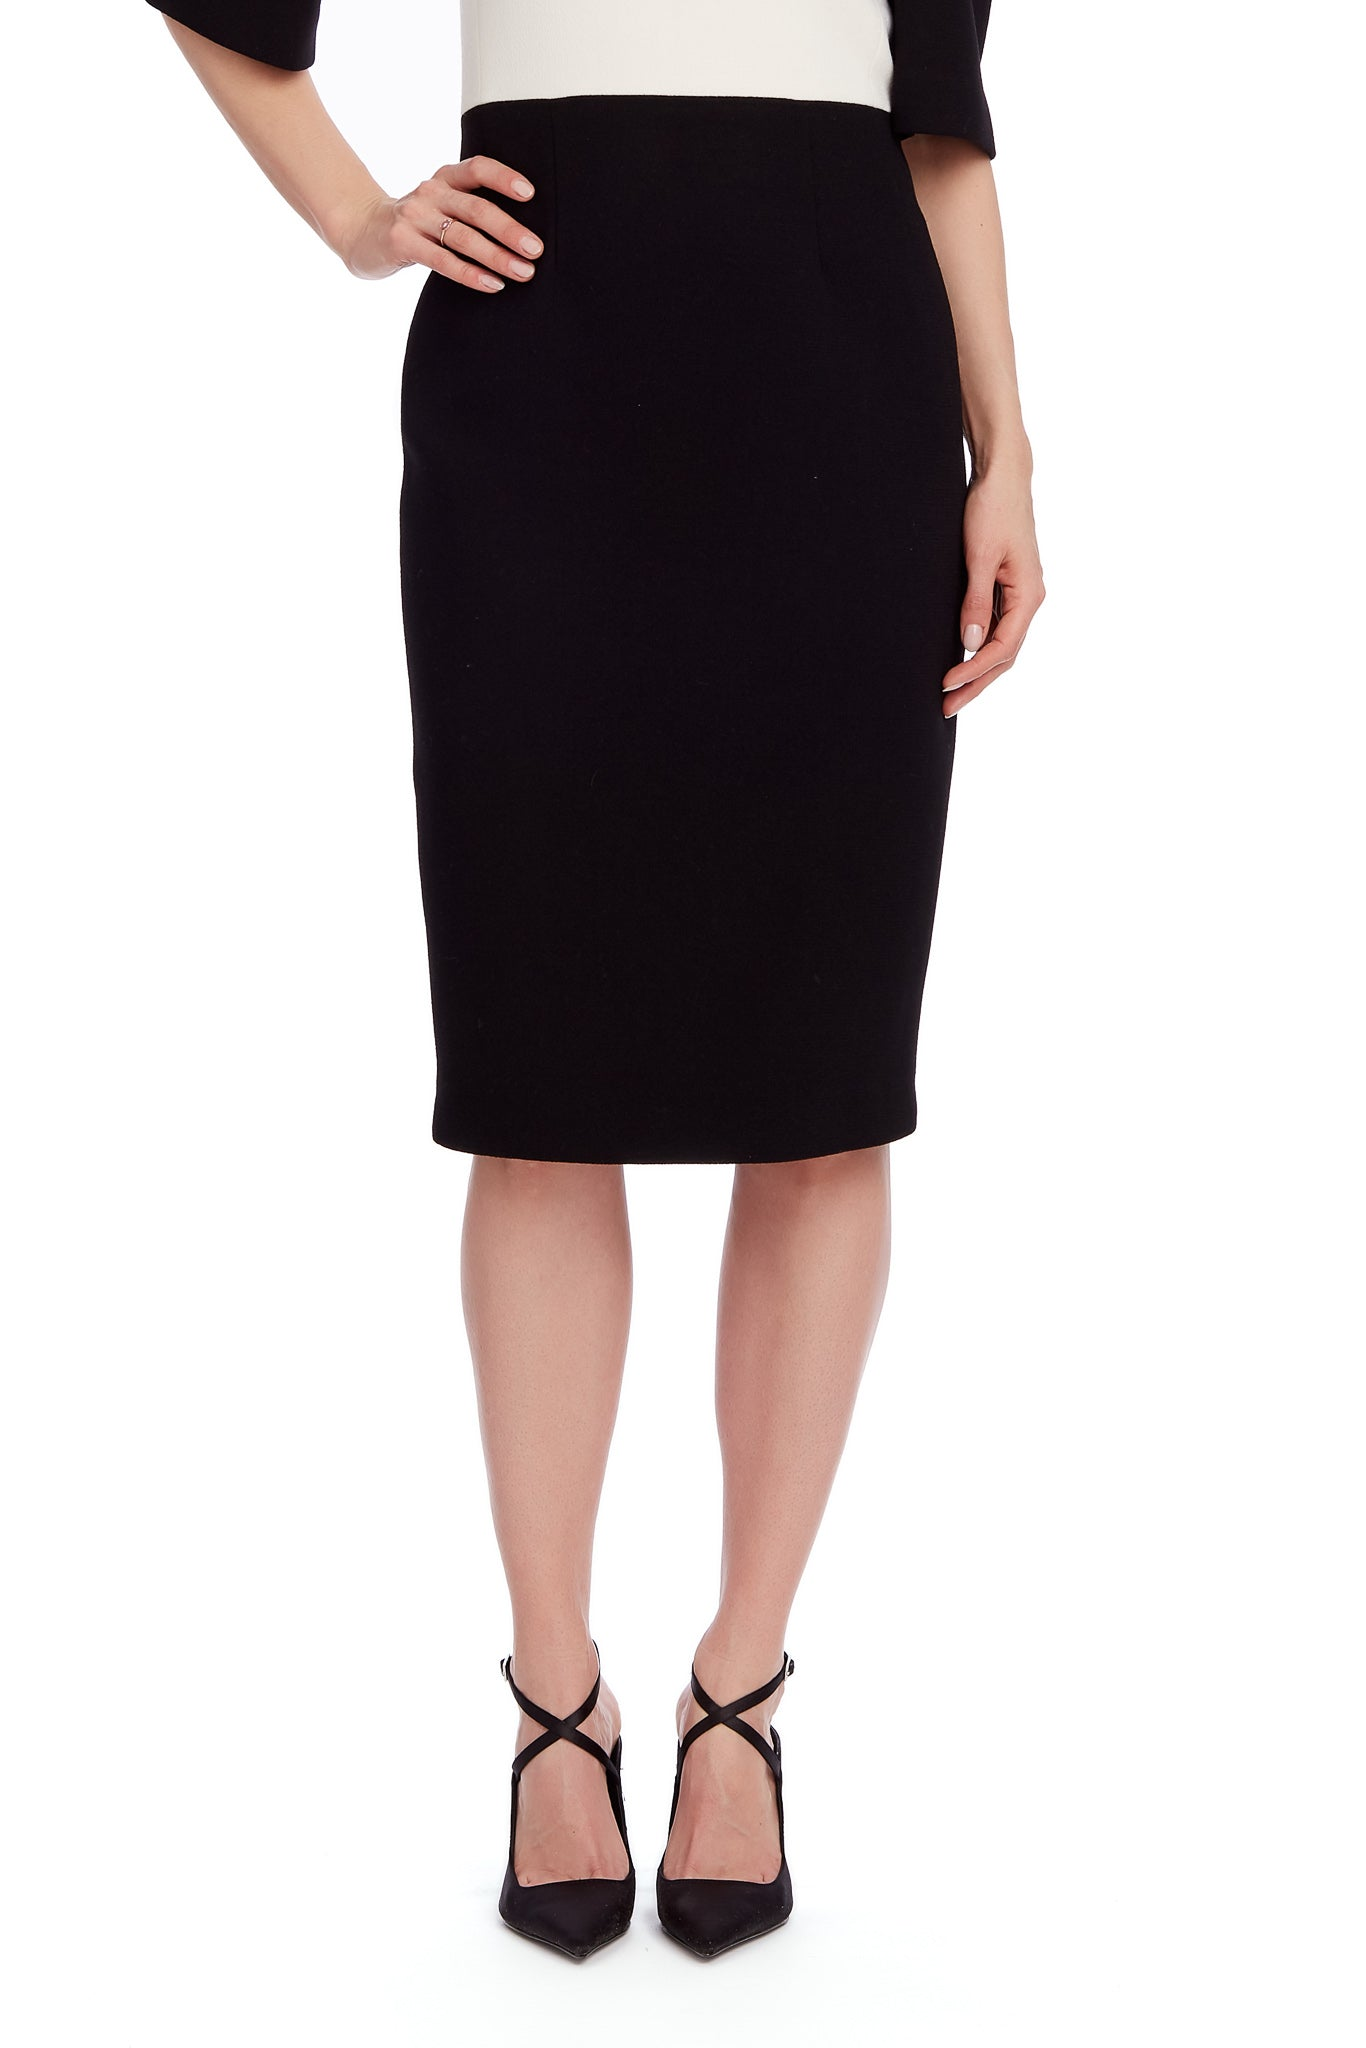 Betina Short Sleeve Sheath Bicolor Work and Cocktail Dress